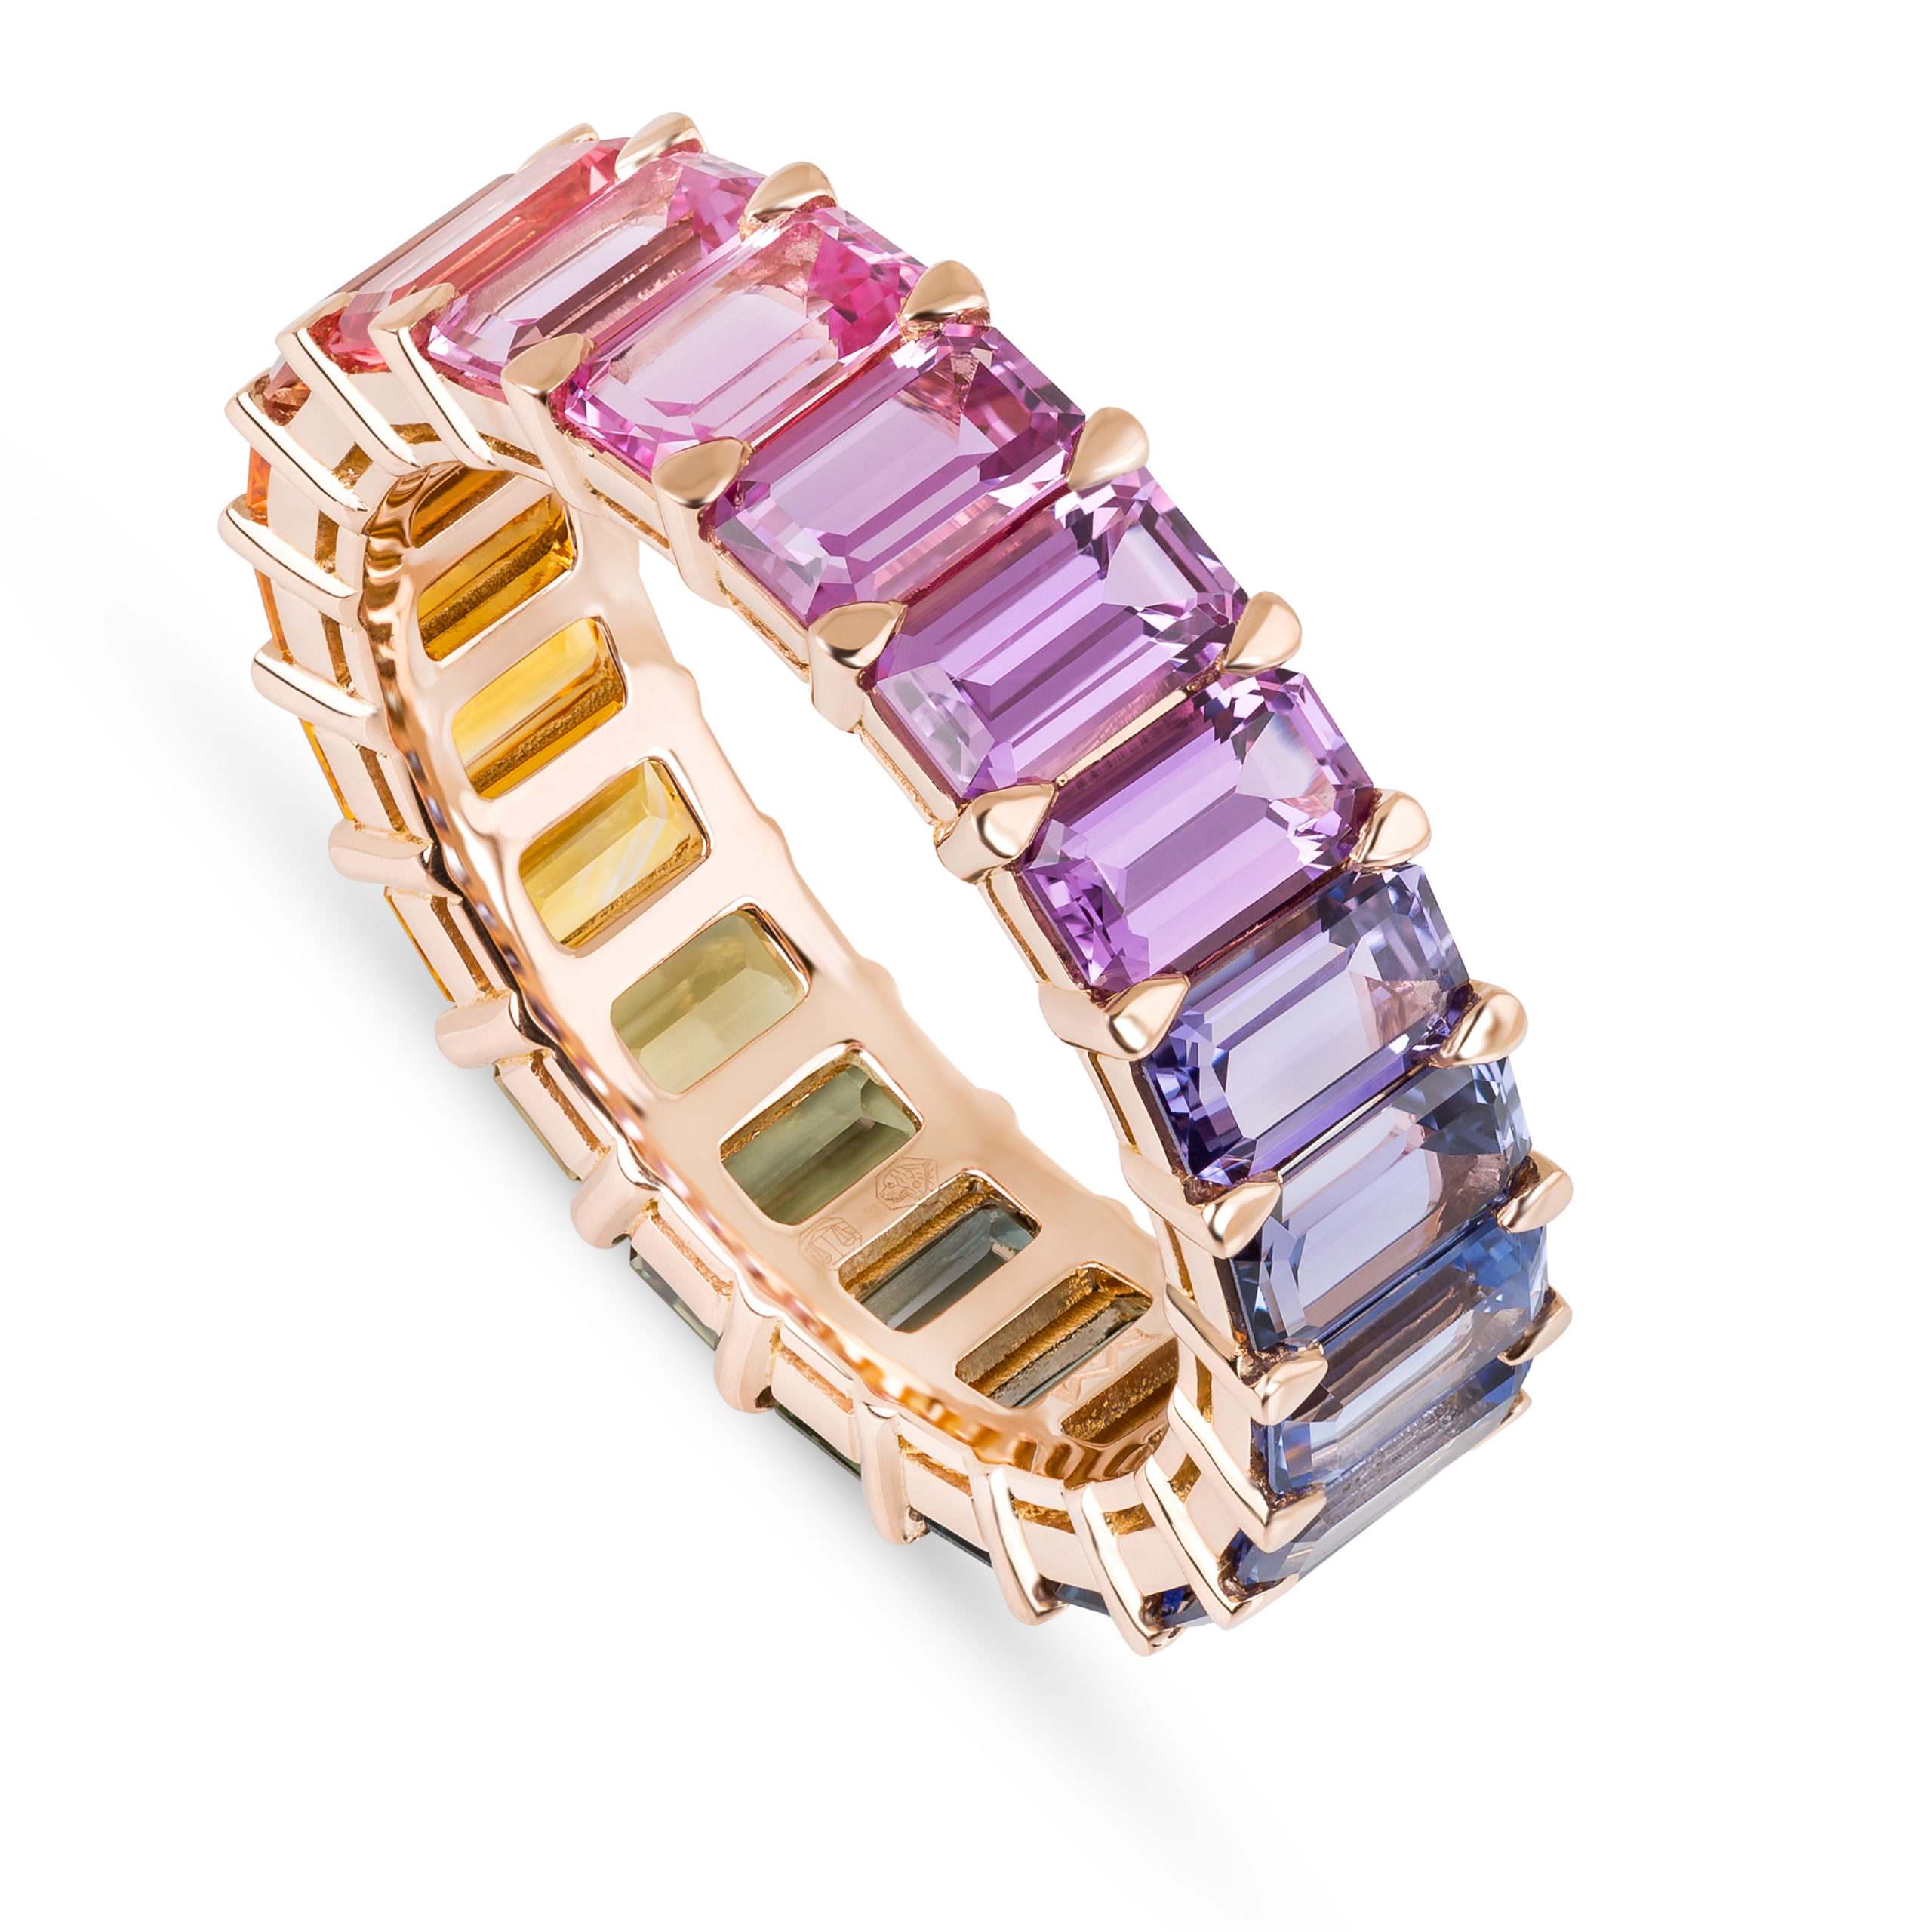 Camille Louise Rings